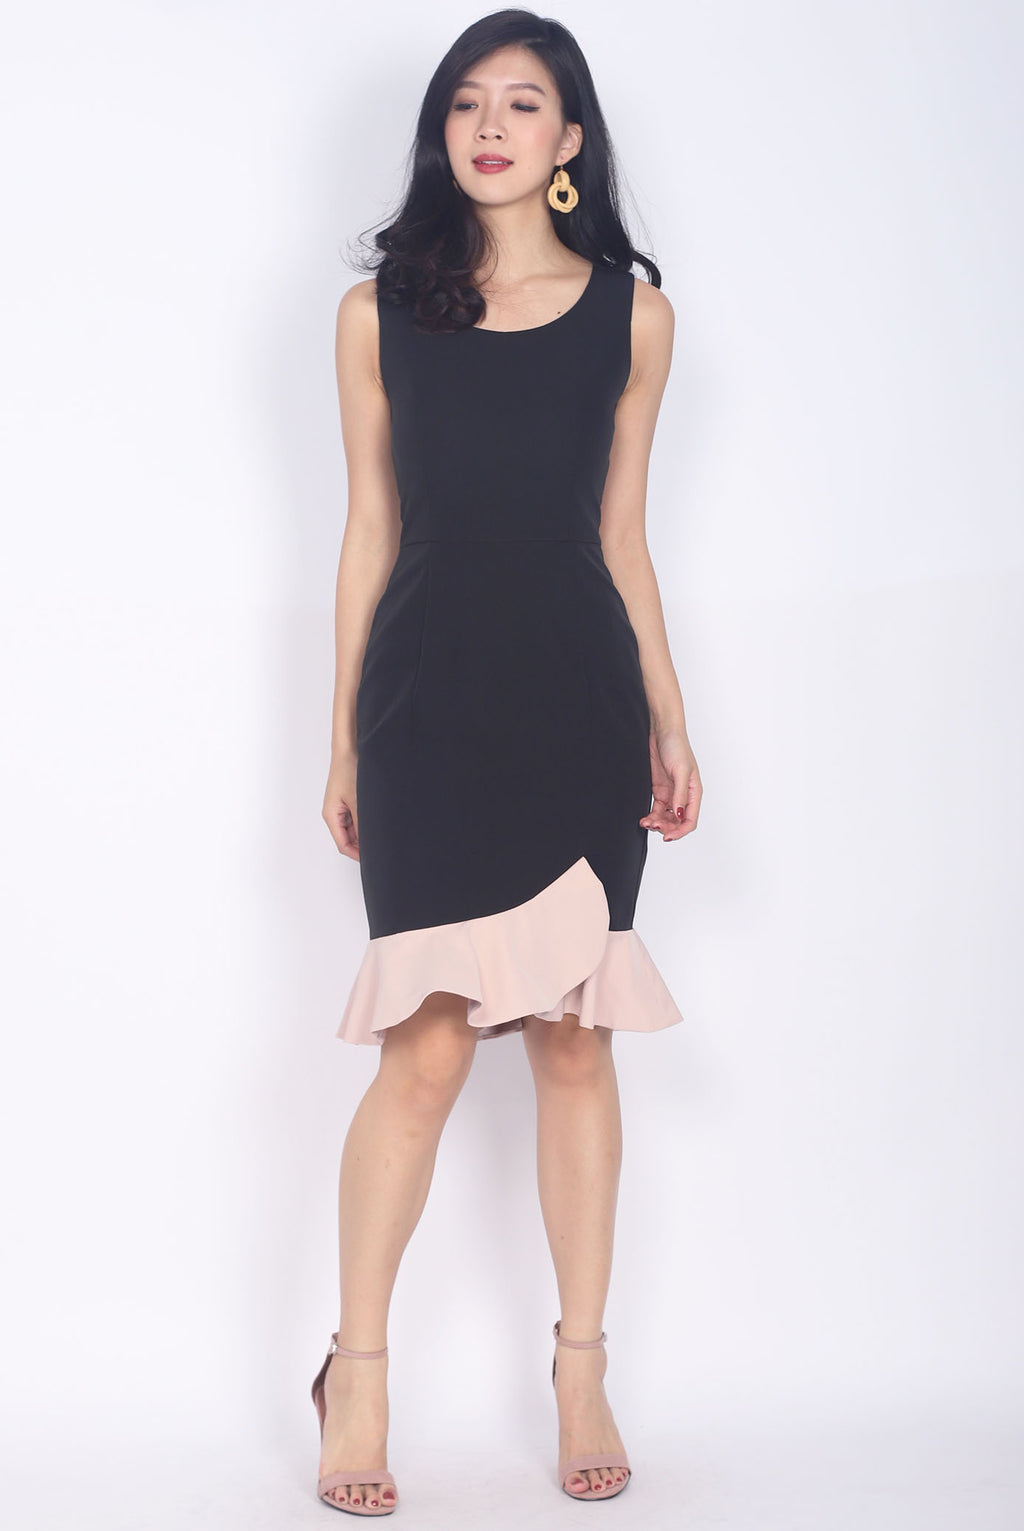 *Restock* Balthana Stacked Hem Mermaid Dress In Black/Pink